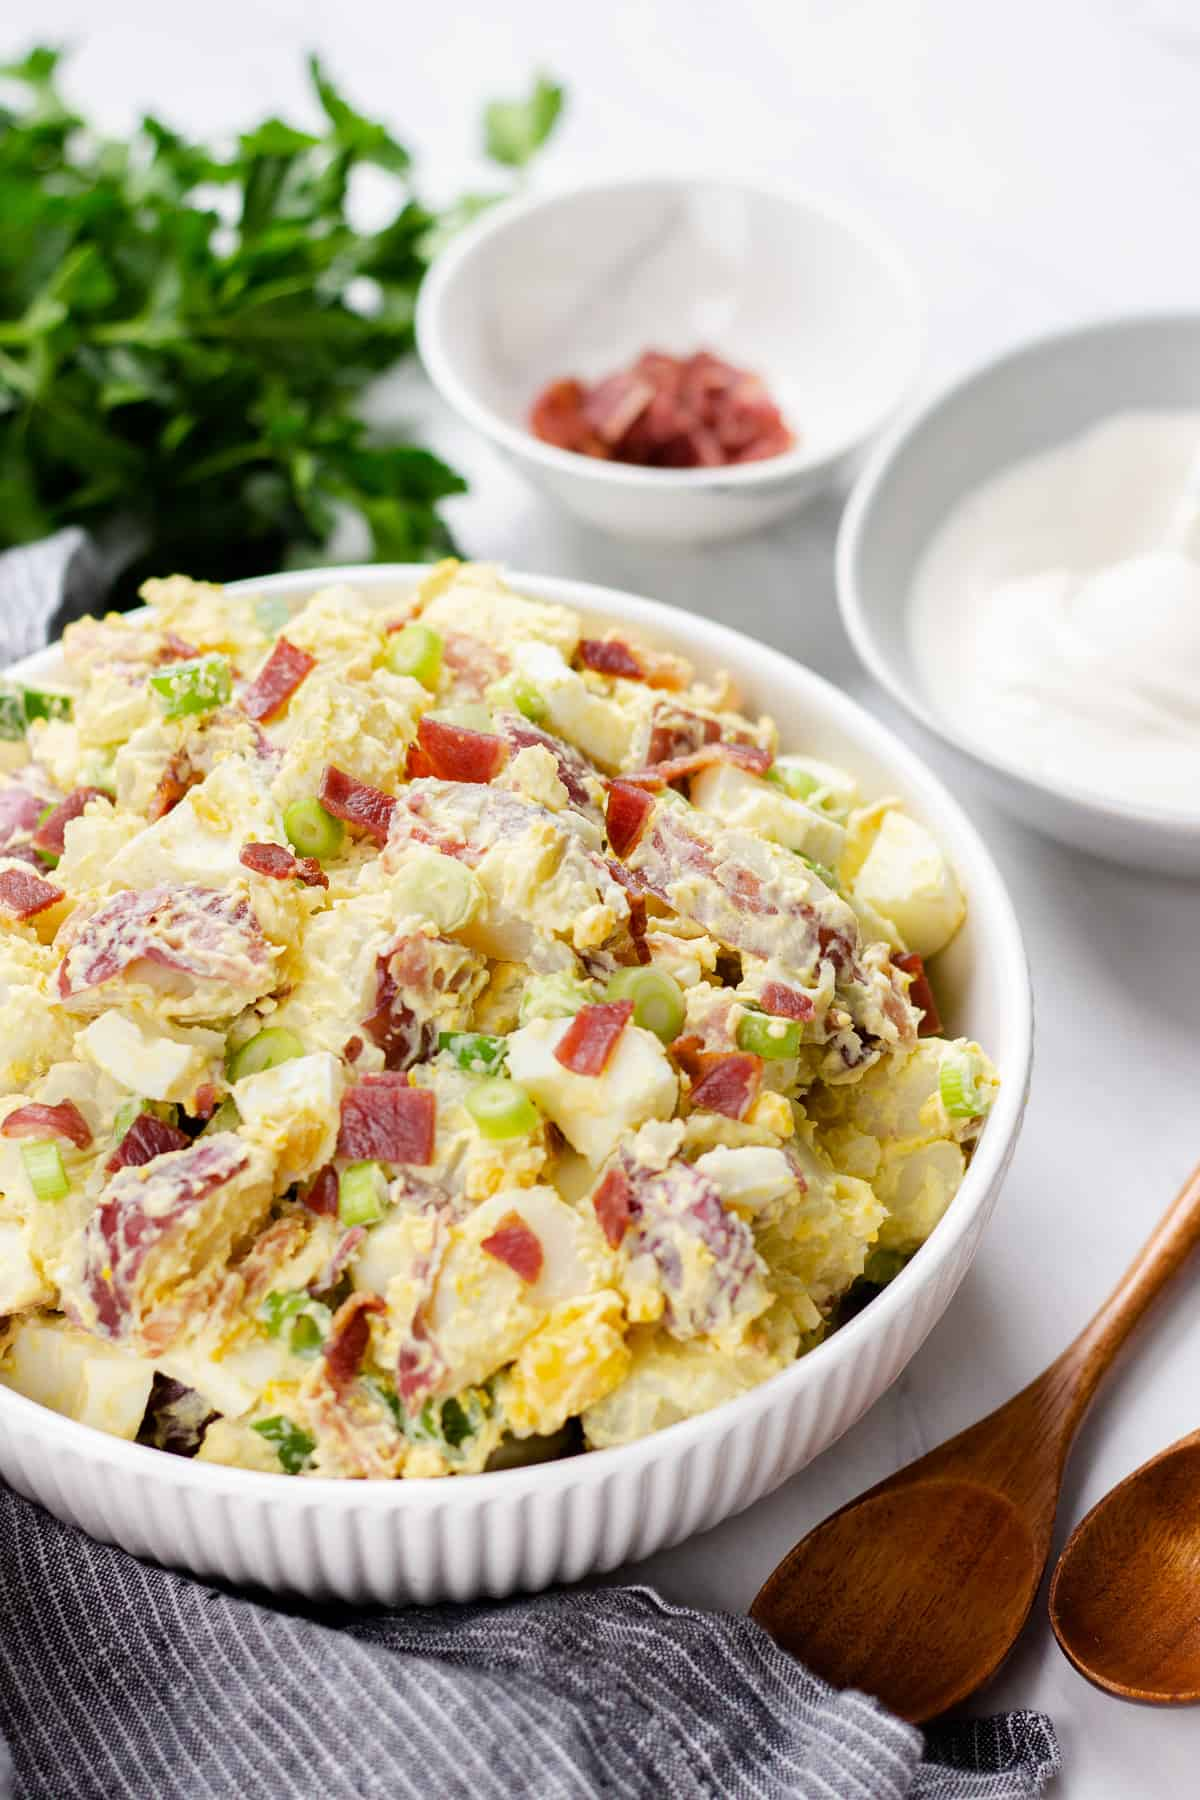 Potato Salad with Bacon and Egg in a white bowl.